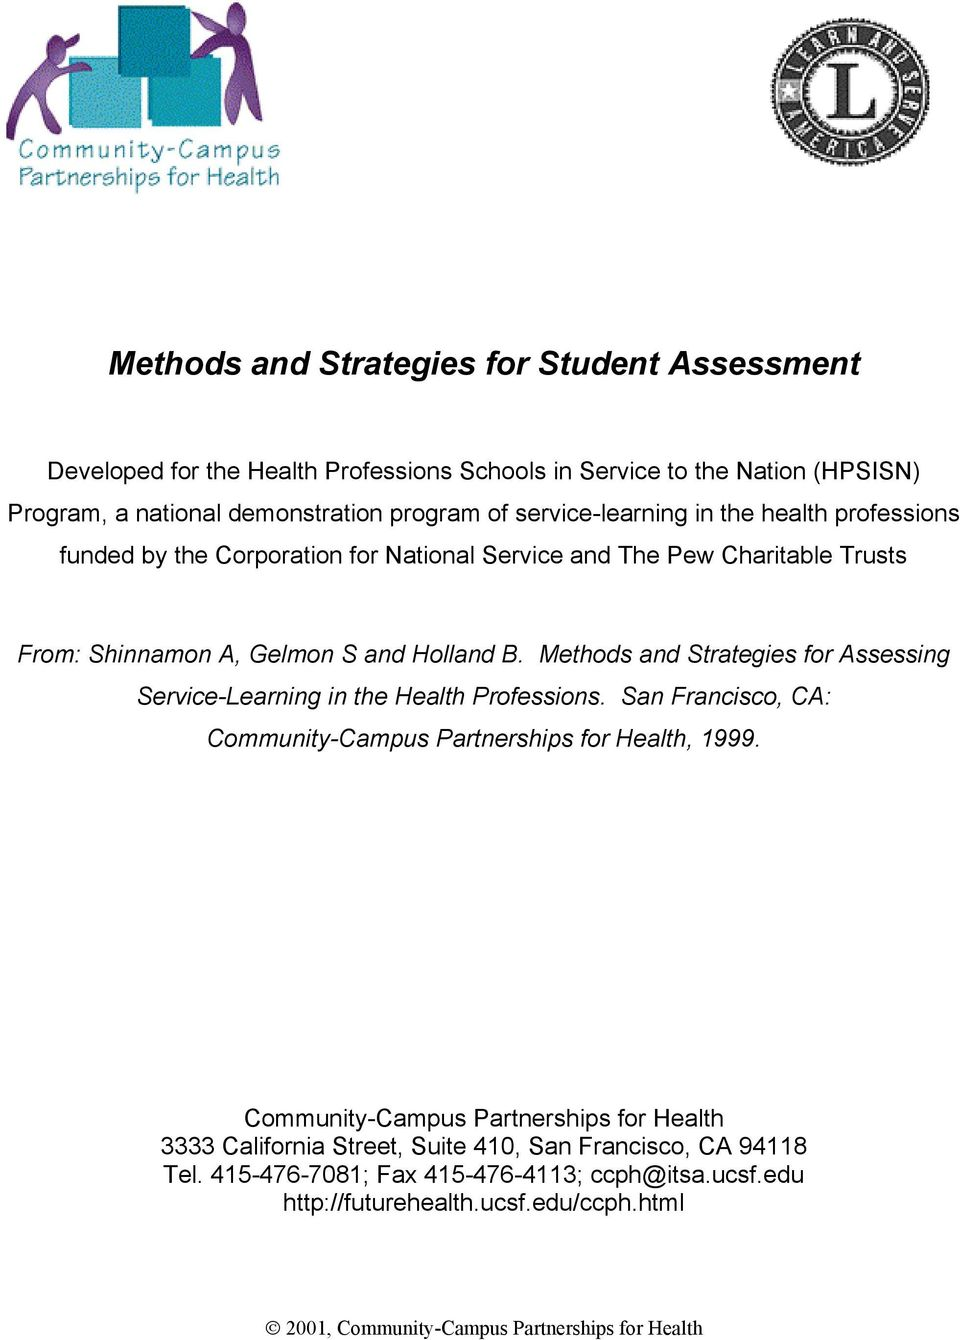 Methods and Strategies for Assessing Service-Learning in the Health Professions. San Francisco, CA: Community-Campus Partnerships for Health, 1999.